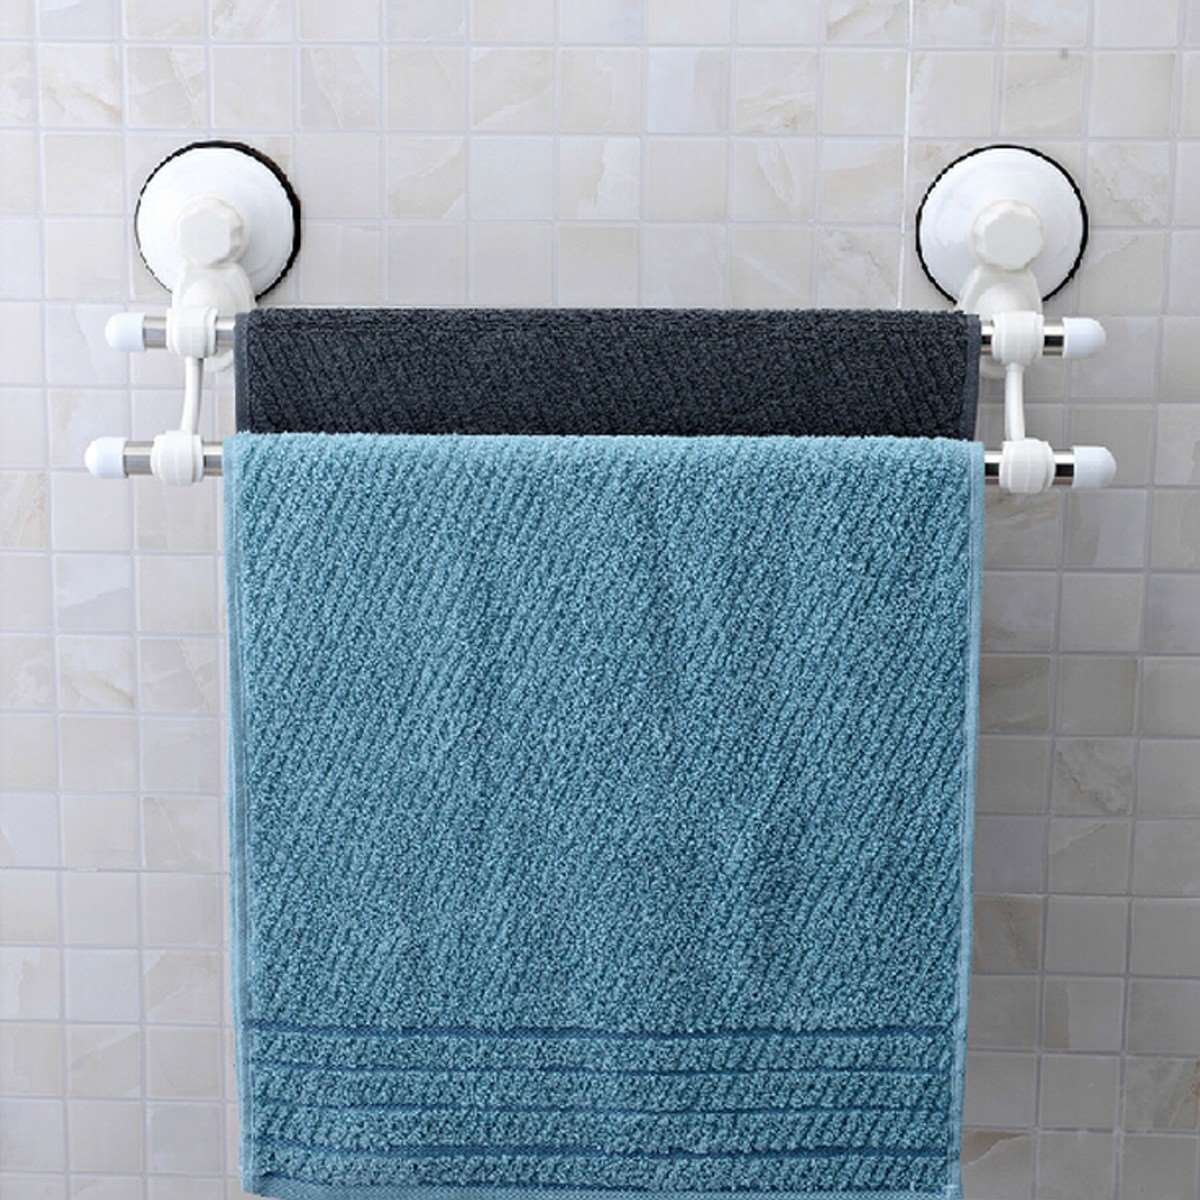 double rod suction cup stainless steel wall mounted bathroom towel rail holder storage rack. Black Bedroom Furniture Sets. Home Design Ideas